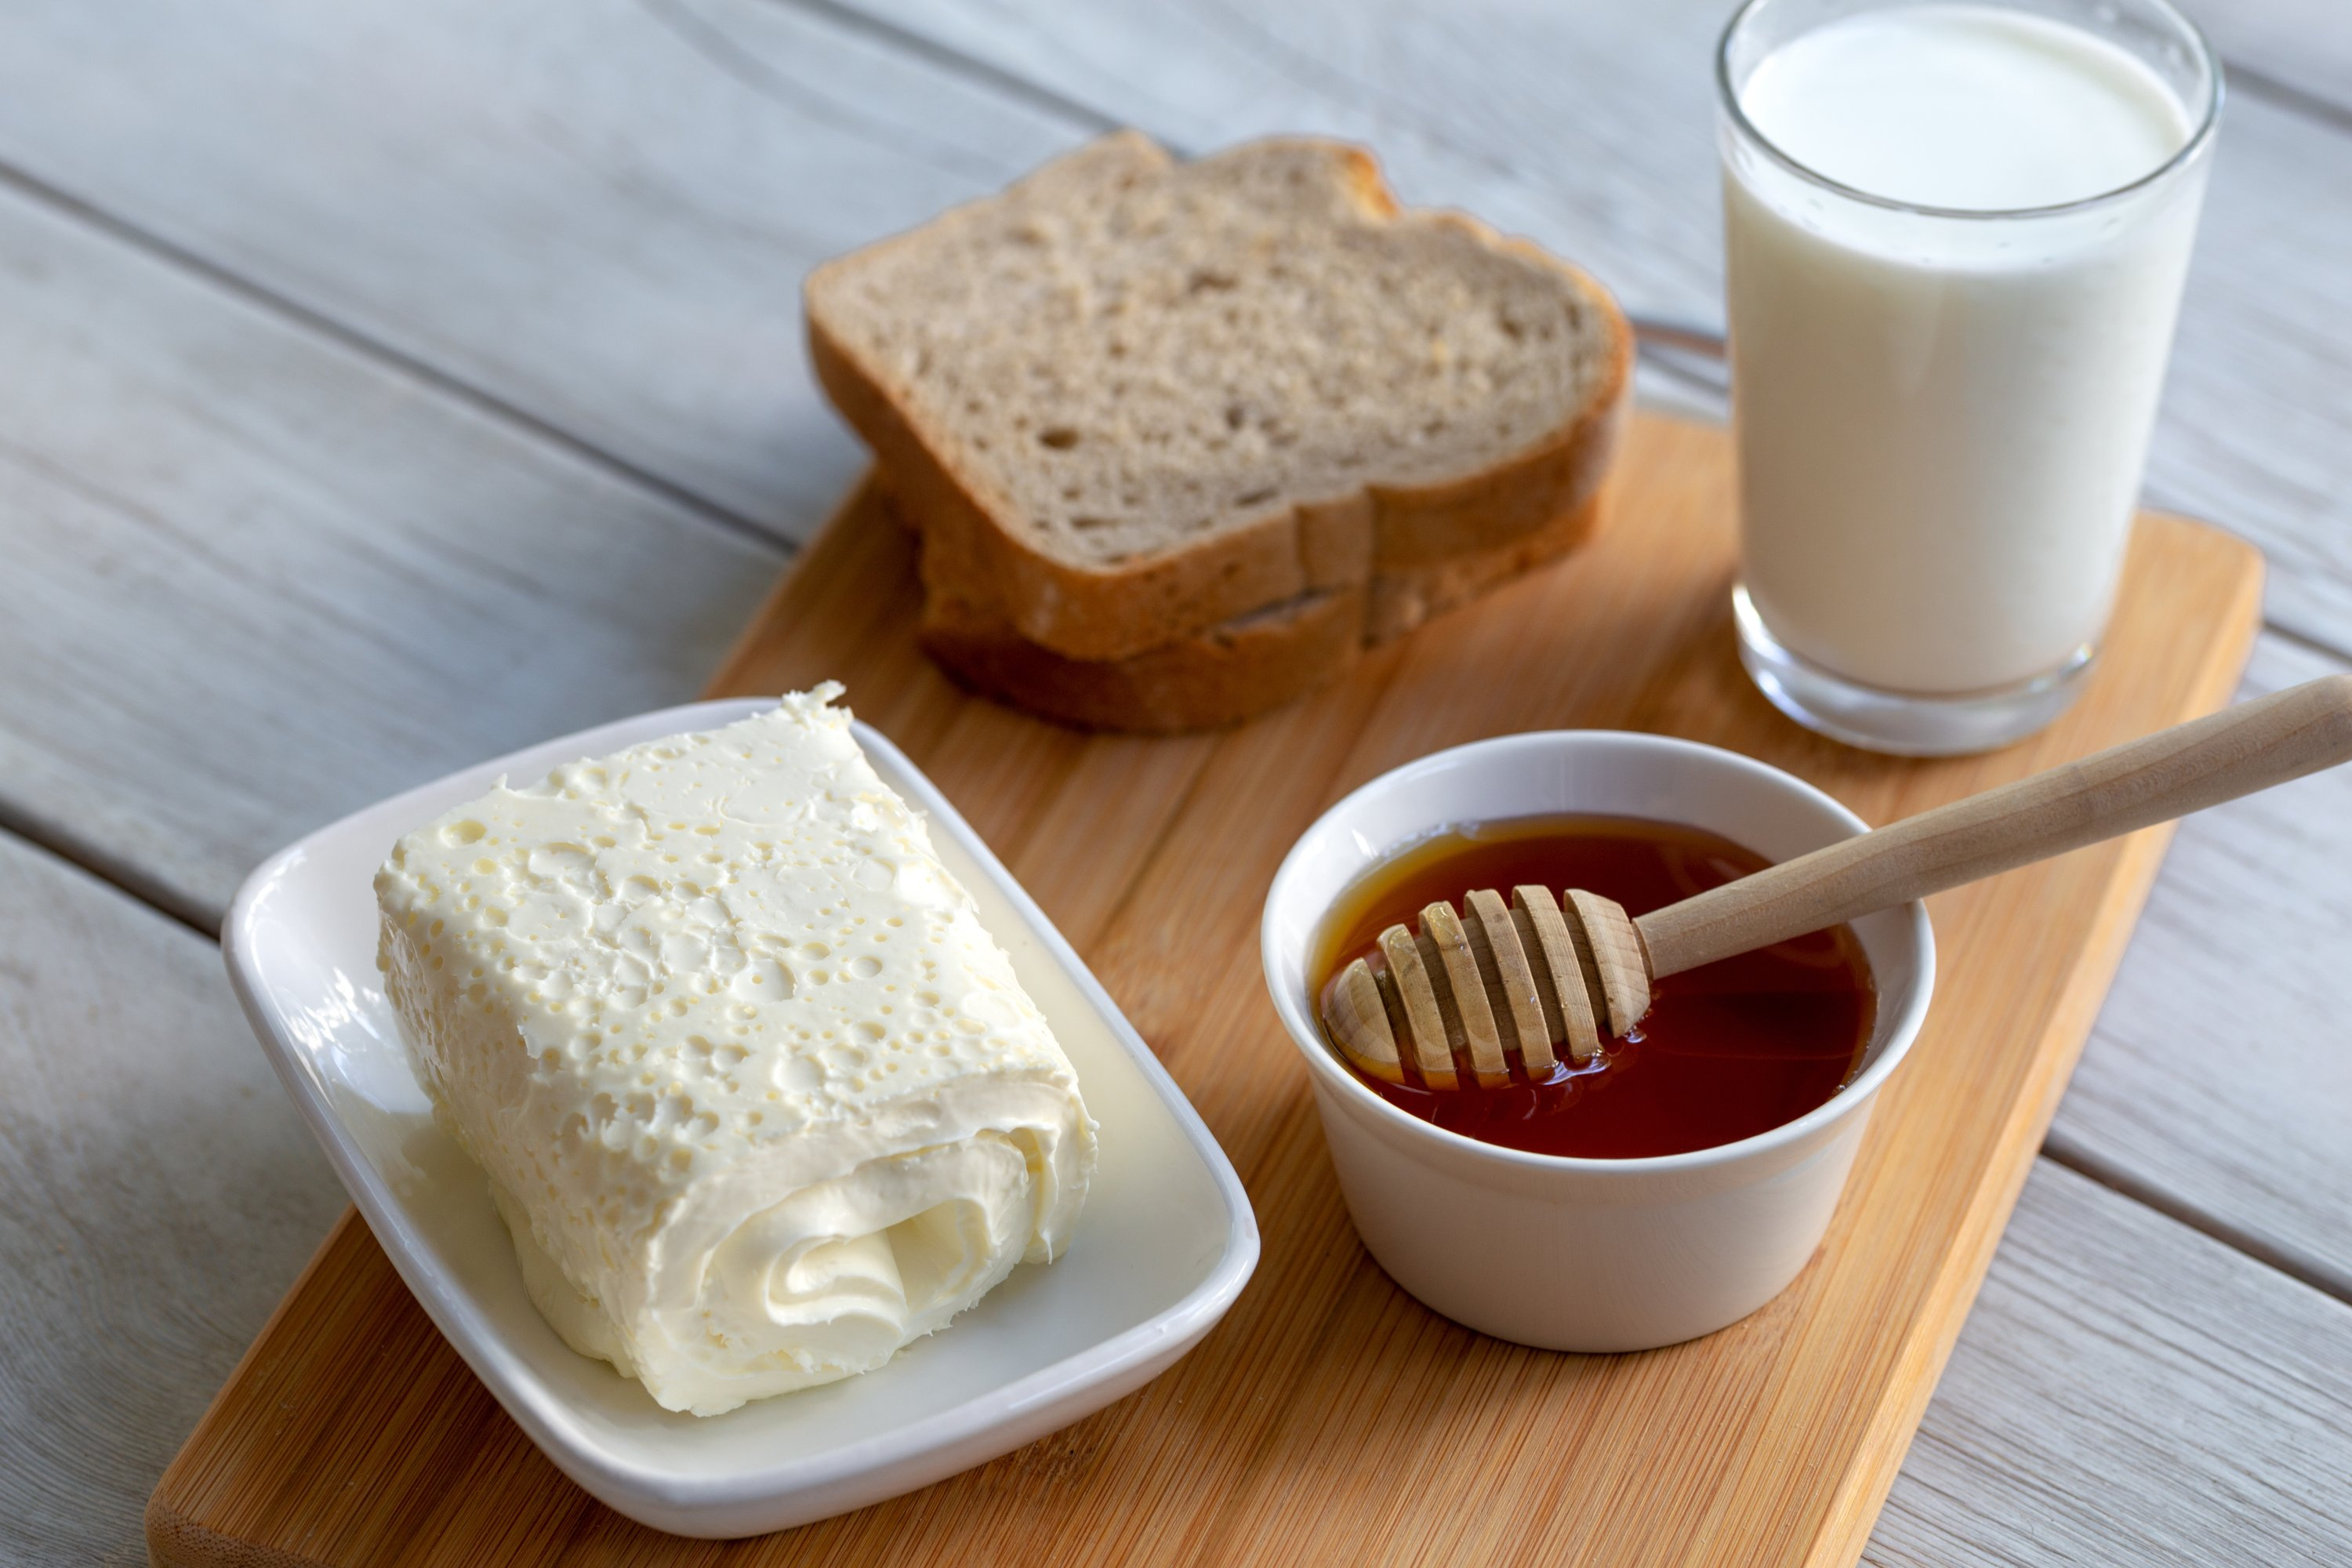 Bal-kaymak (honey and clotted cream) is among the dishes you must try during Turkish breakfast. (Shutterstock Photo)